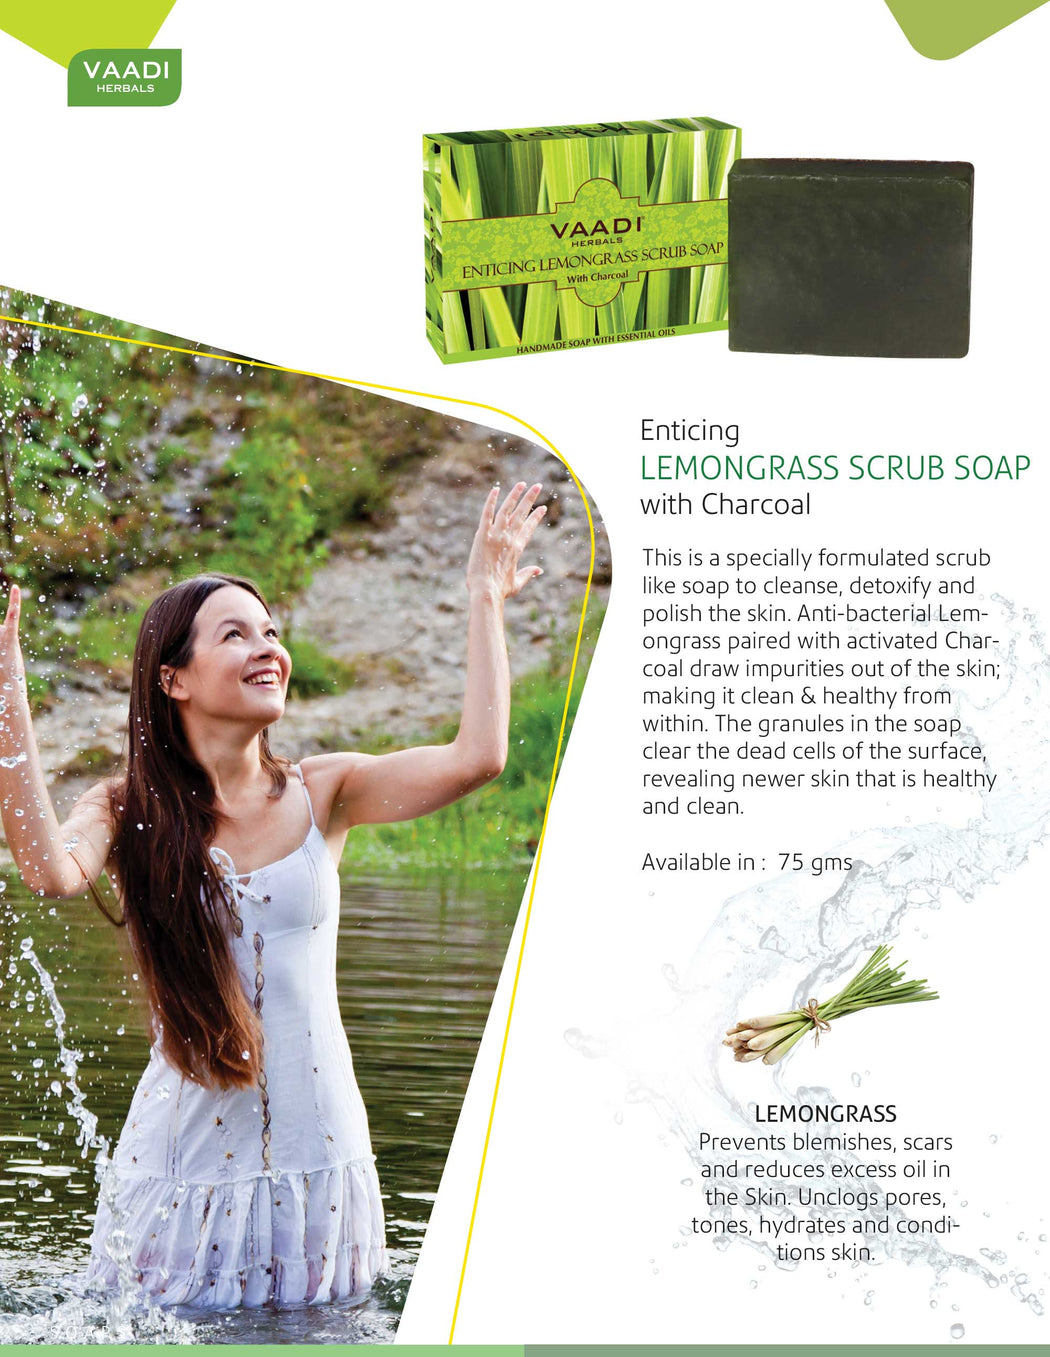 Enticing Organic Lemongrass Soap with Charcoal - Exfoliates & Polishes Skin (6 x 75 gms / 2.7 oz)